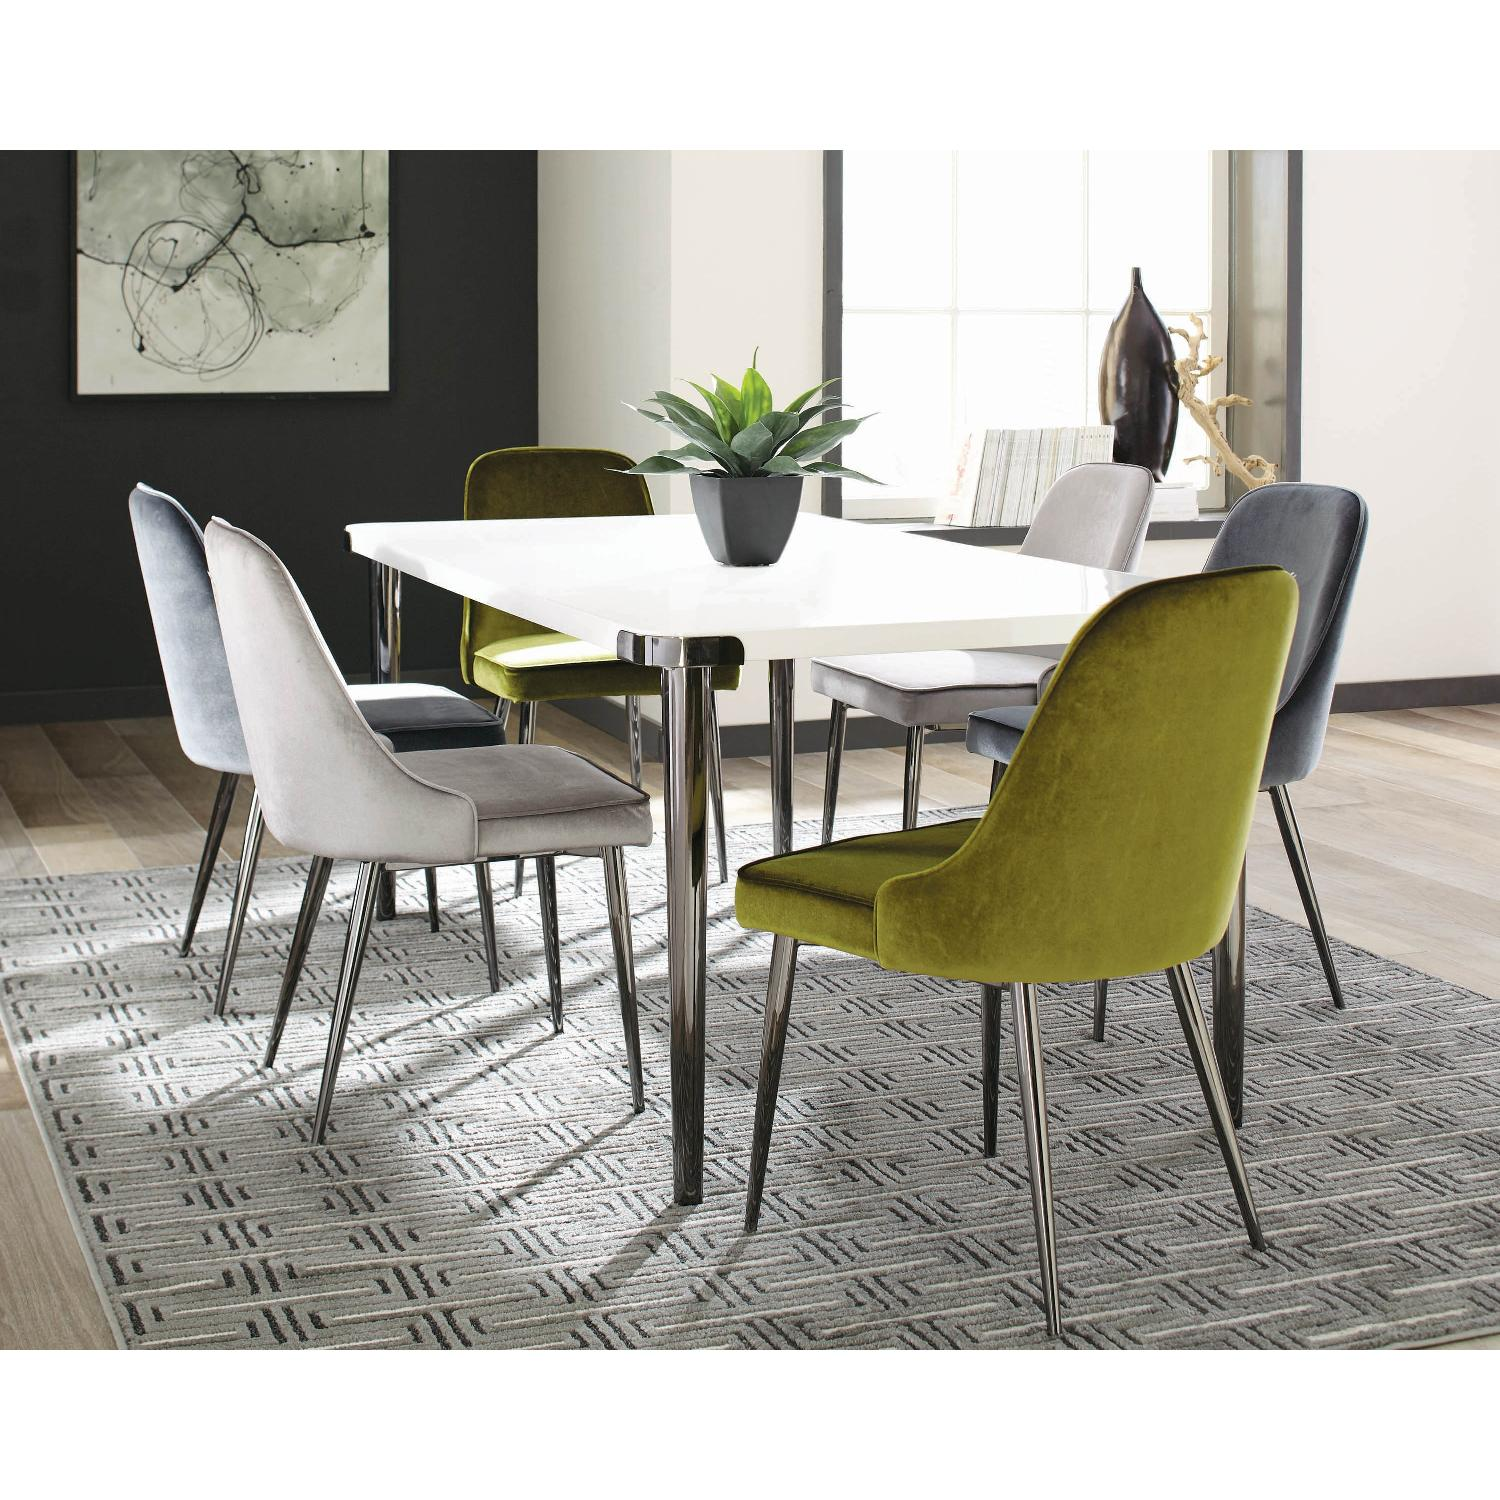 Modern Dining Table in Gloss White Top & Dark Nickel Base - image-2